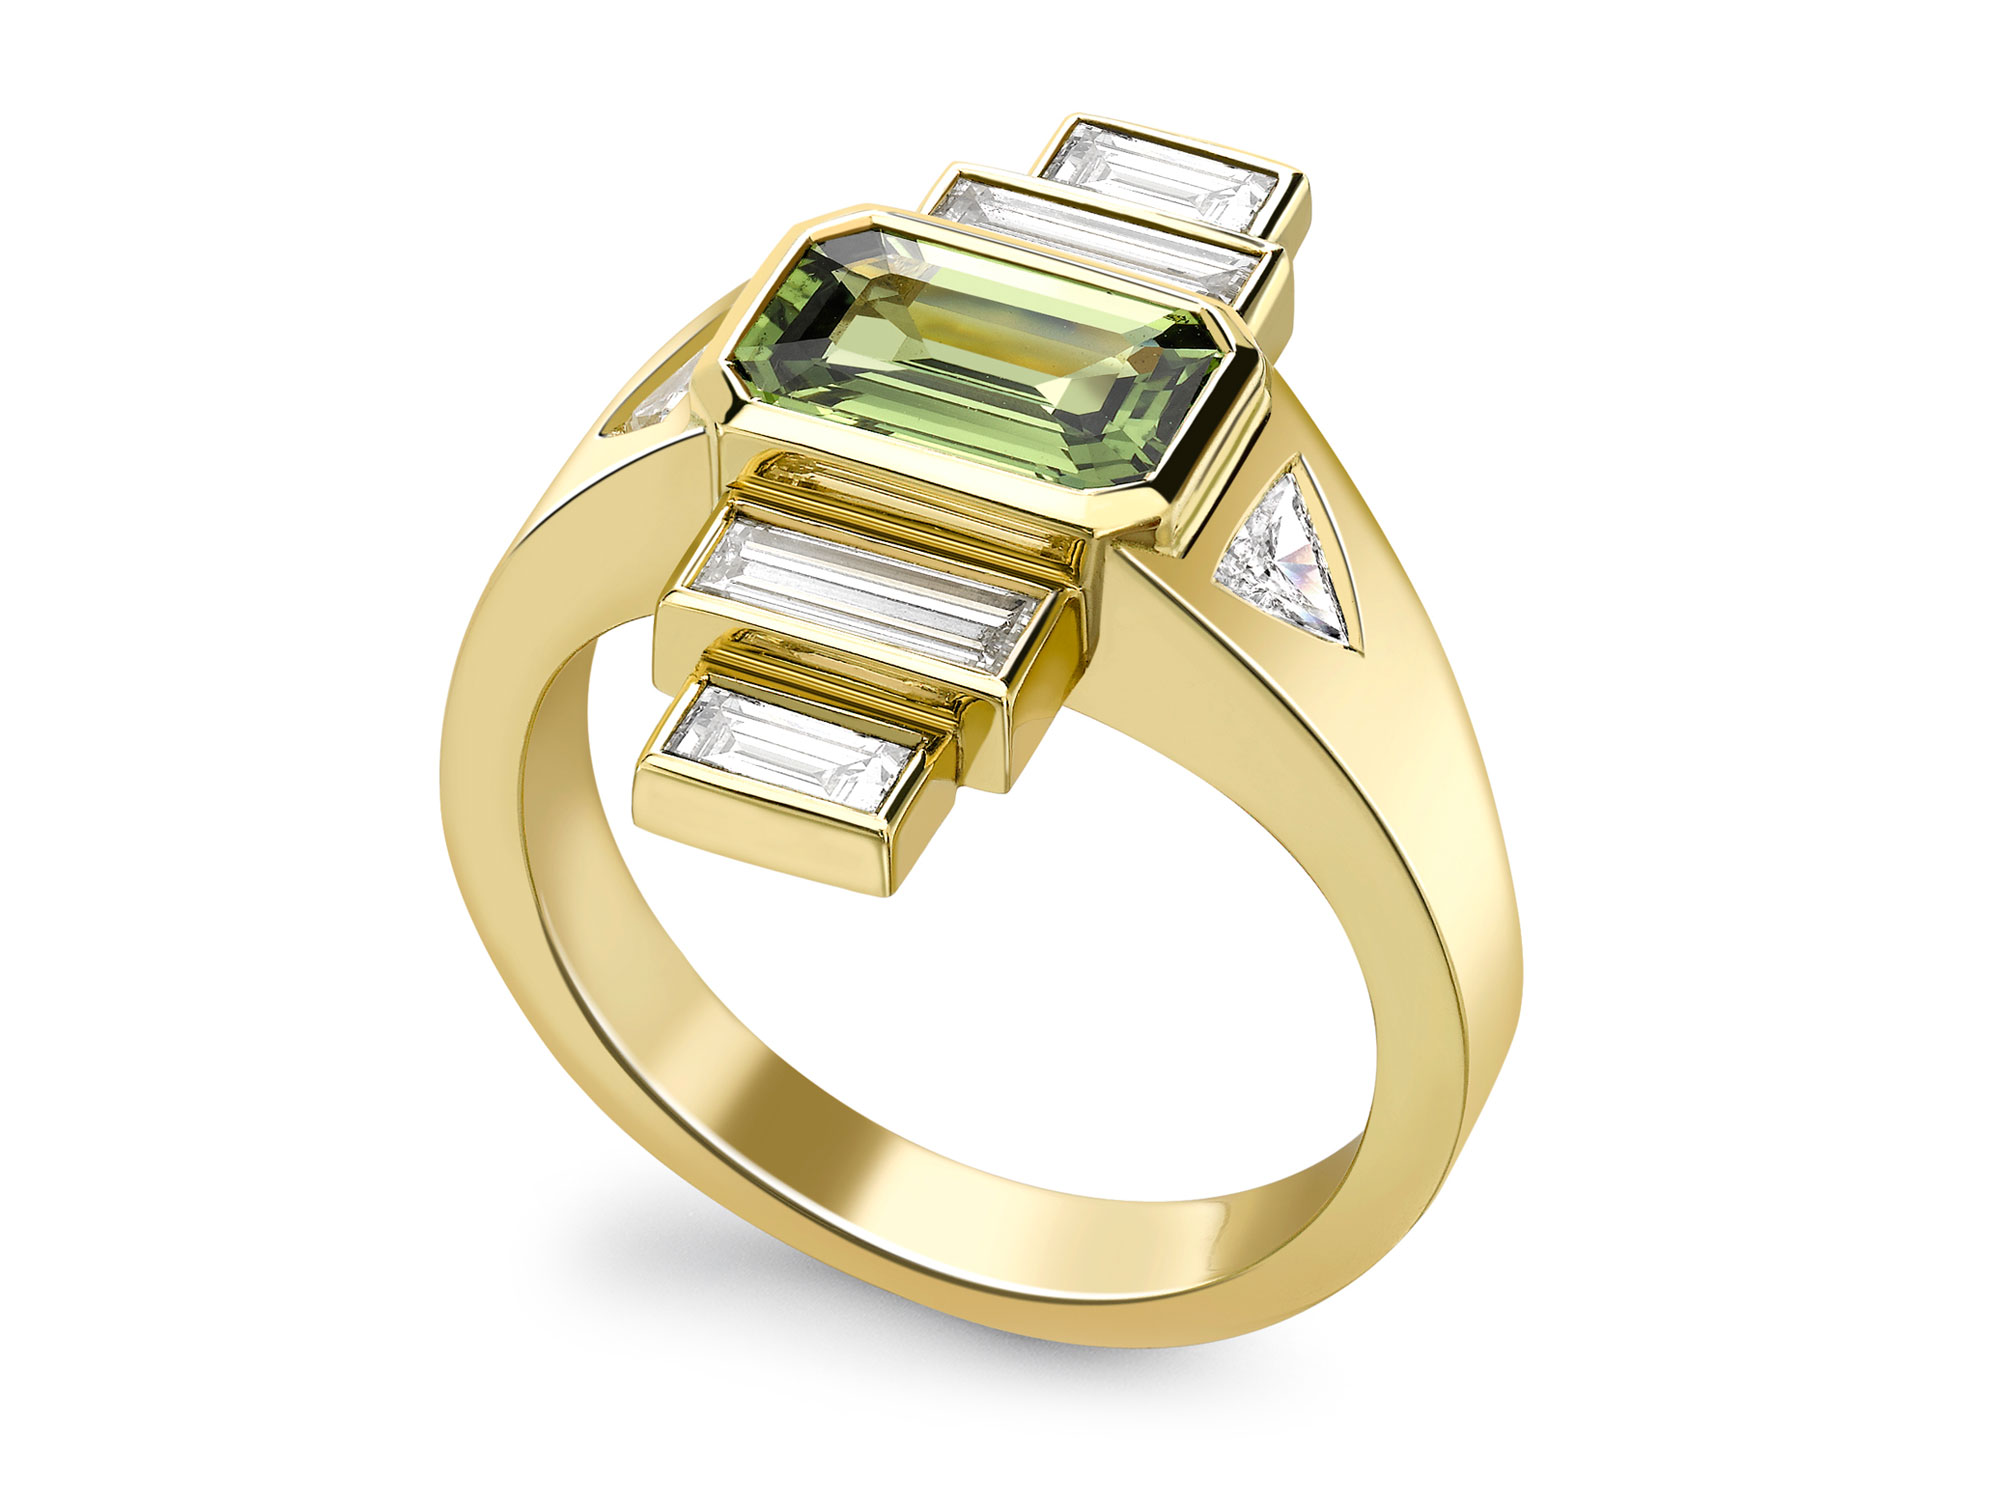 Image Result For Emerald Wedding Rings